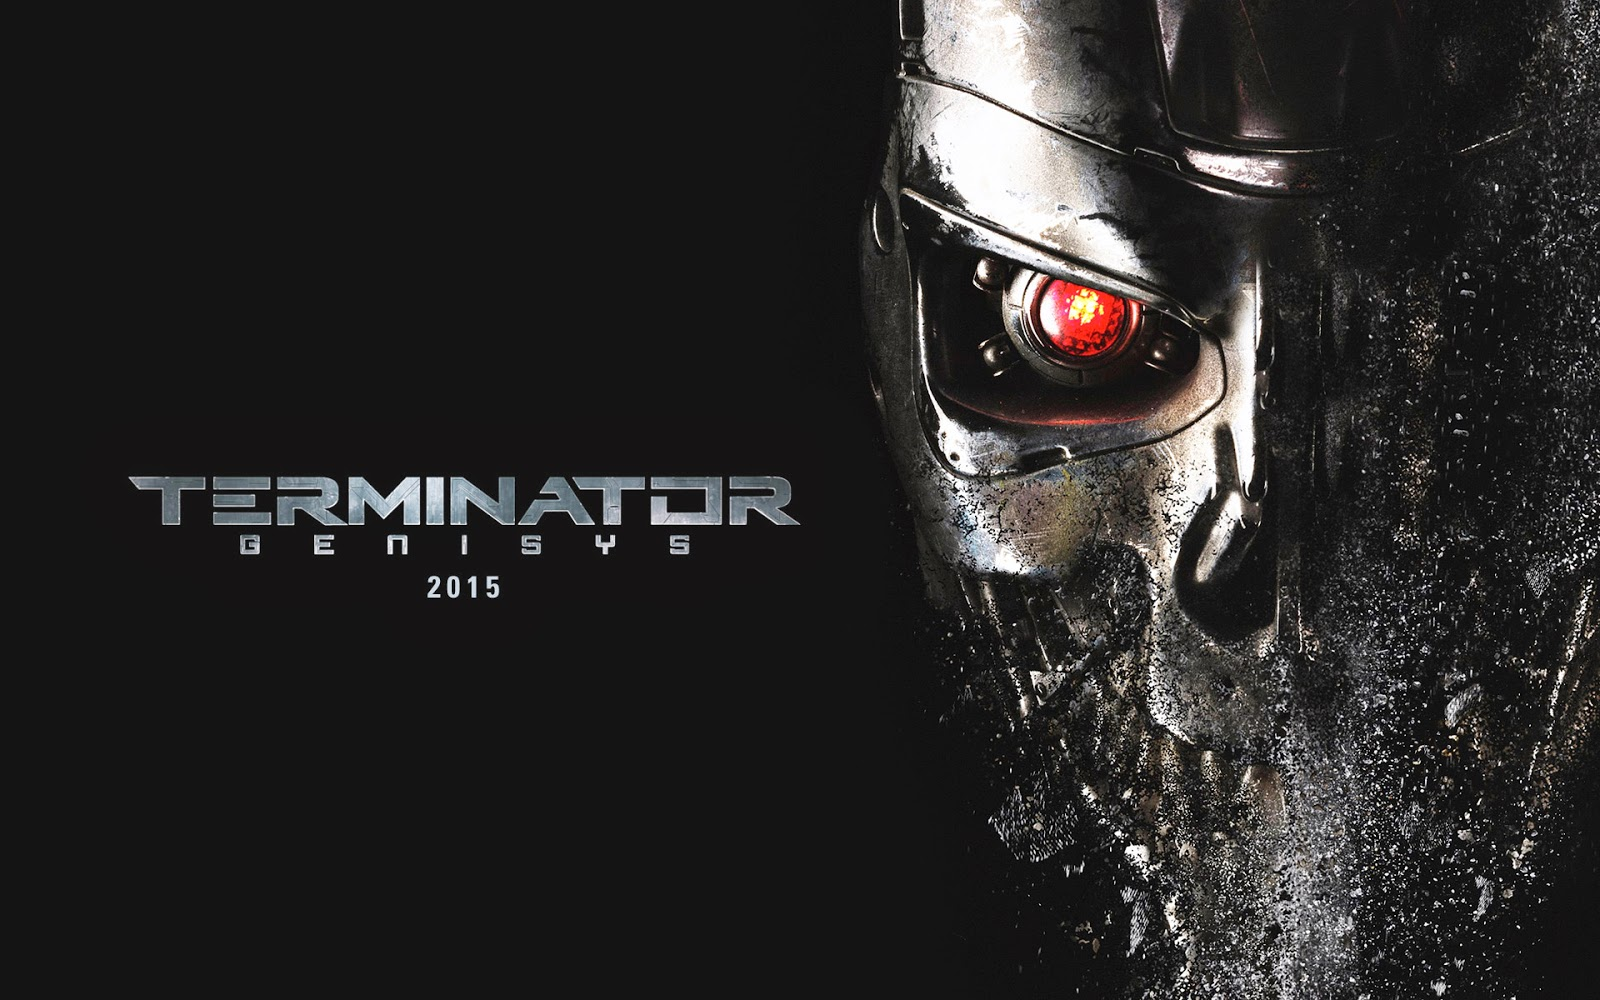 How To Make 3d Wallpaper Terminator Genisys 2015 Wallpaper Kfzoom